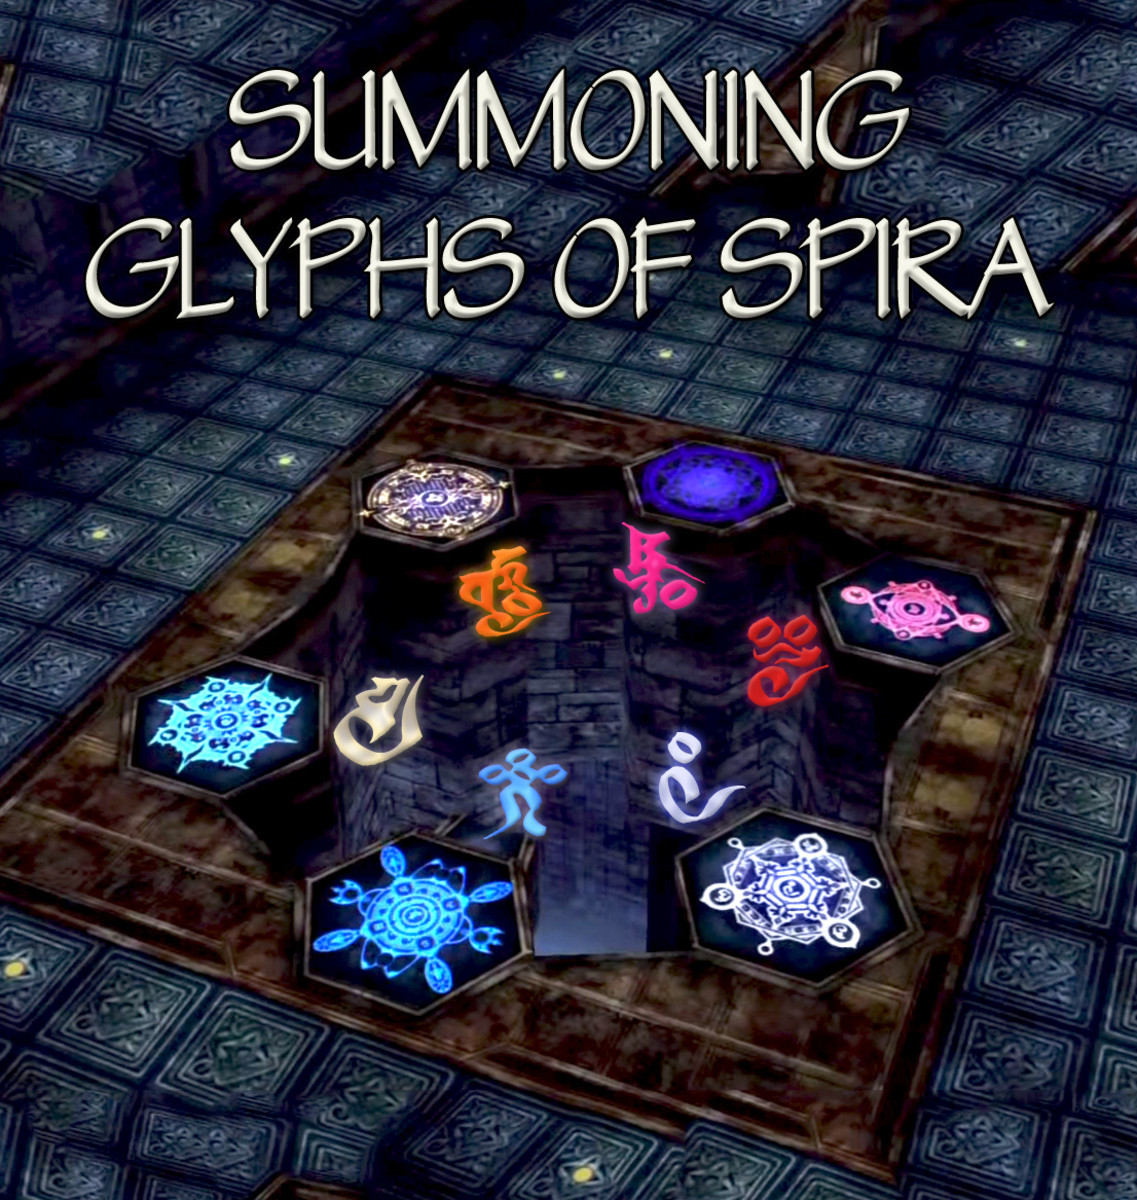 All the summoning glyphs lit up in Zanarkand's Cloister of Trials. I've added the corresponding sign.